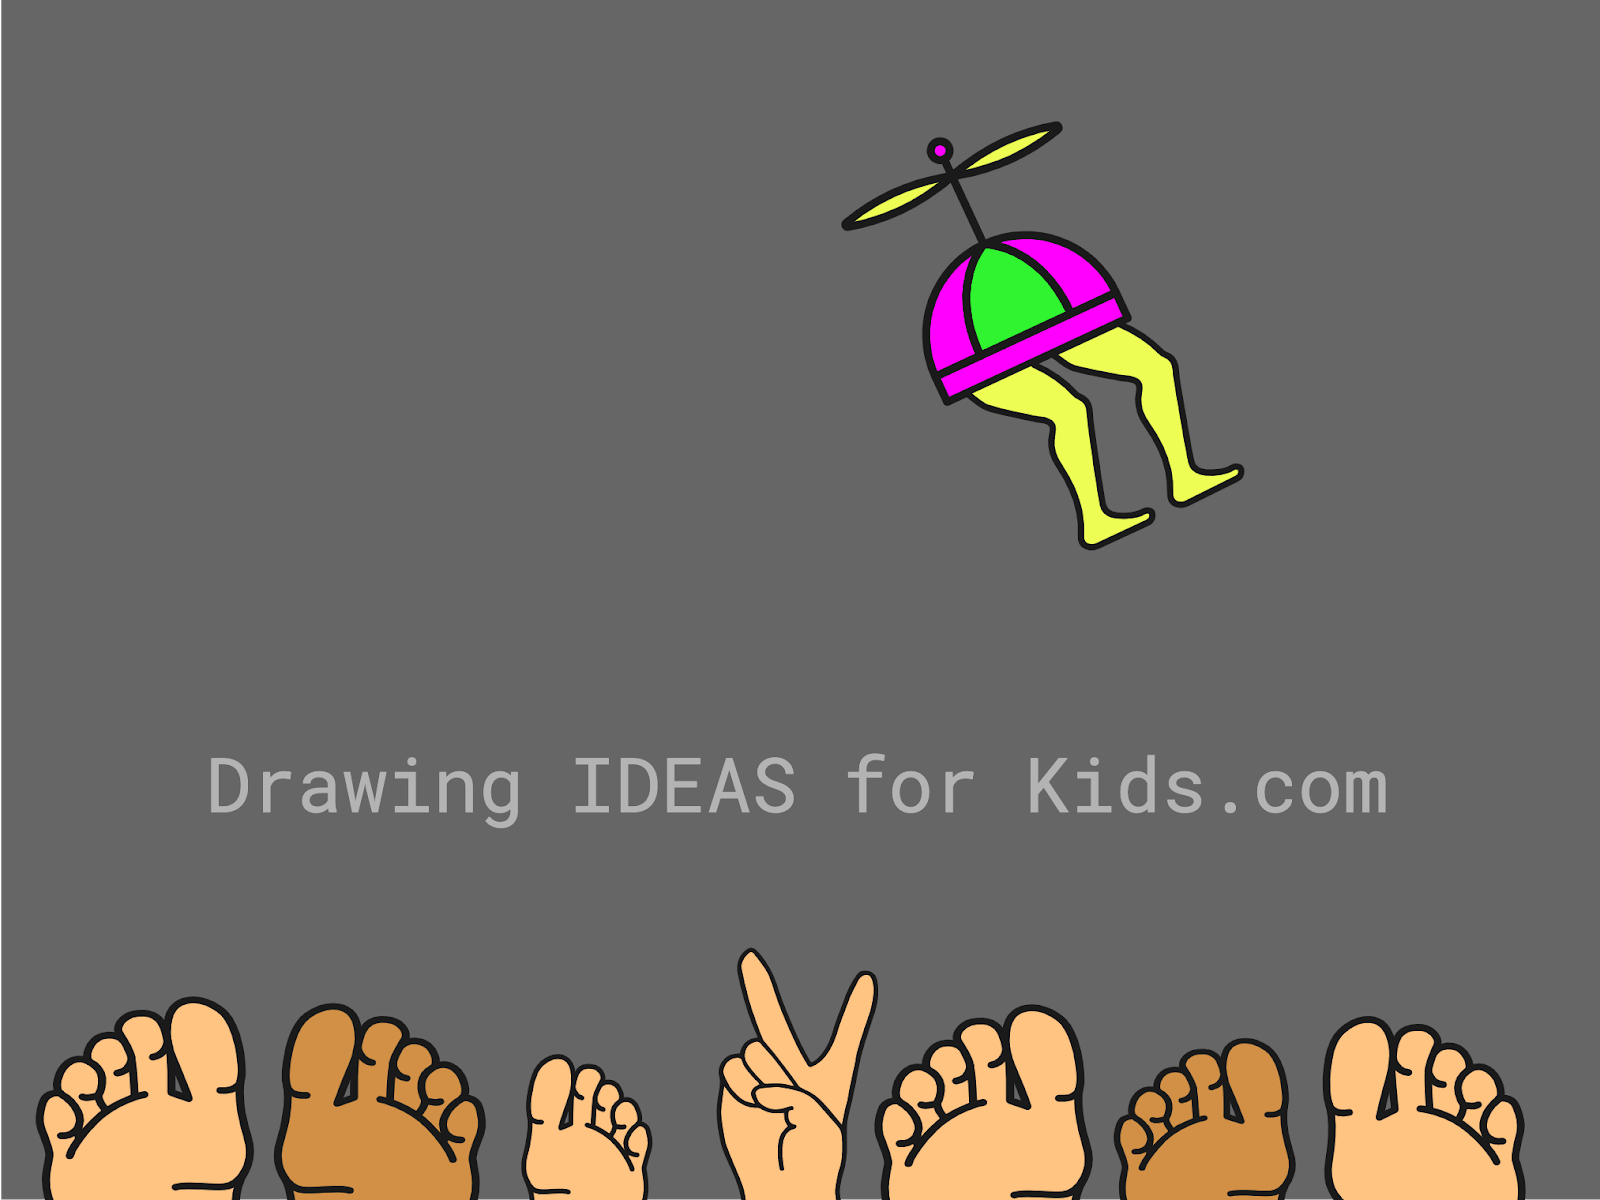 EASY COOL DRAWING IDEAS for KIDs